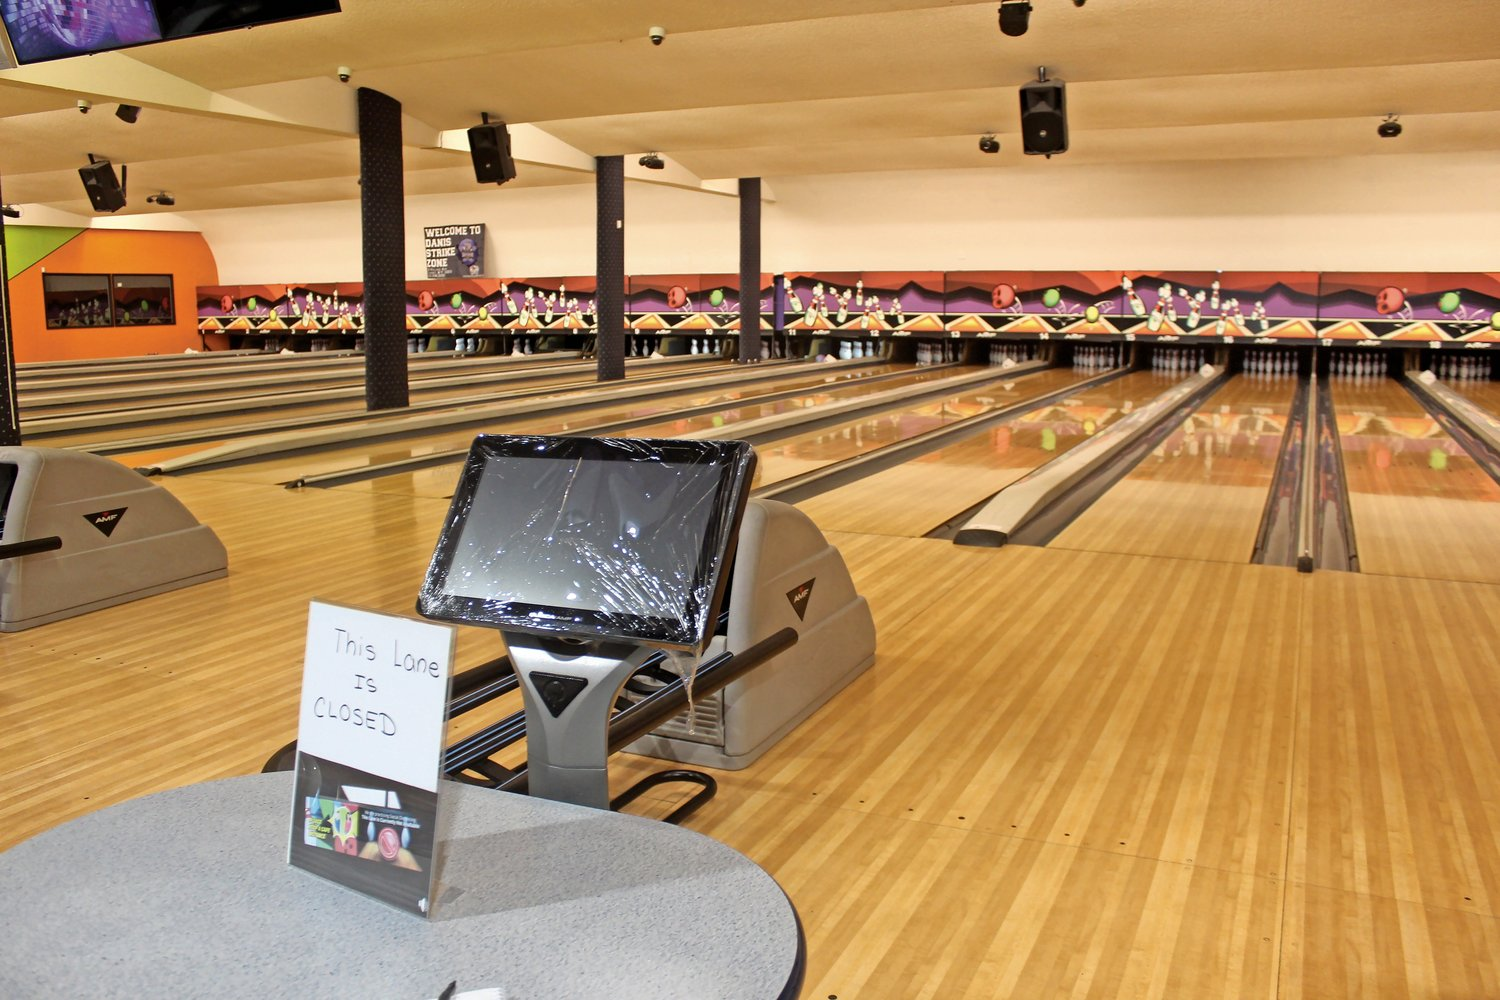 Every lane console is encased in plastic wrap, and bowlers can only use every other lane.